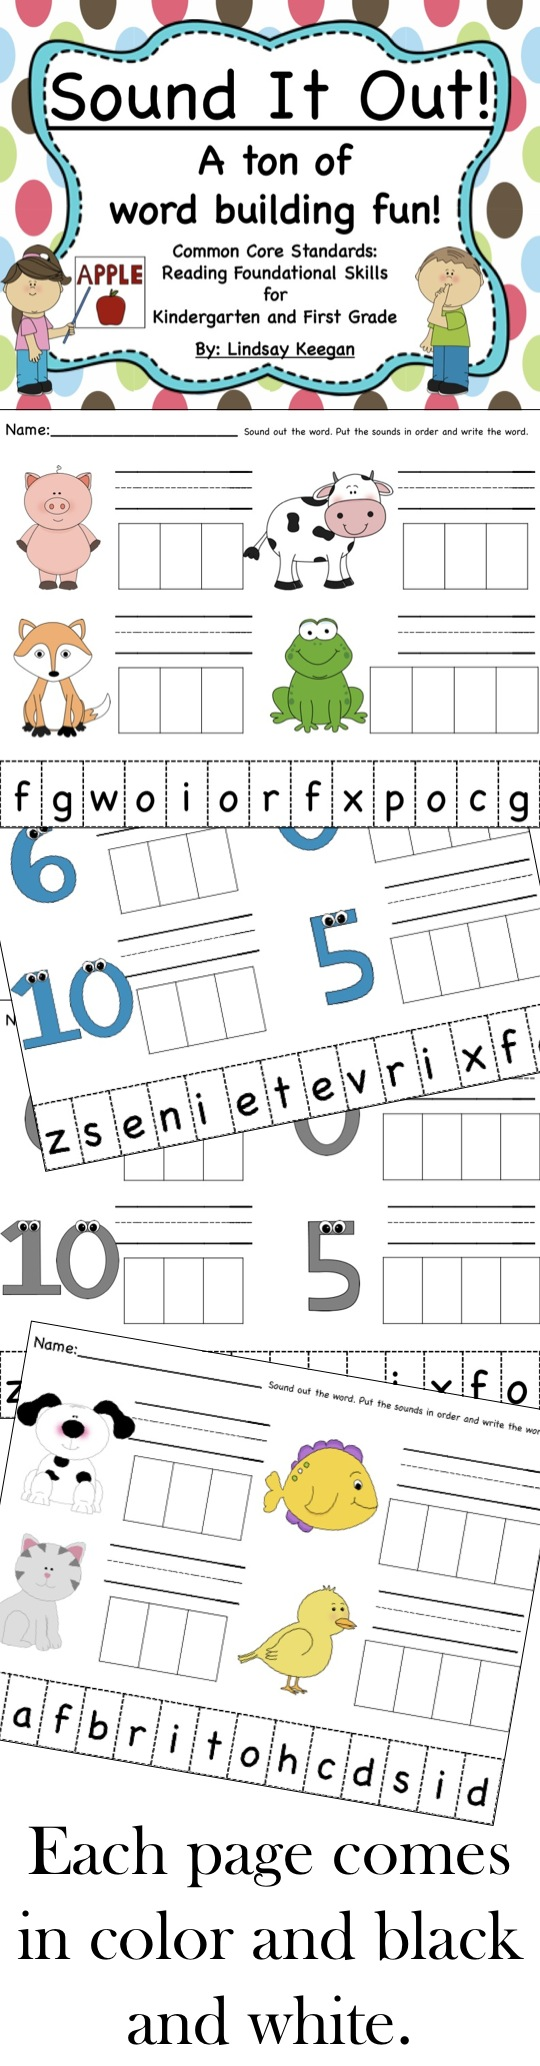 Sound It Out Word Work And Letter Sounds Fun Kindergarten Reading Activities Reading Foundational Skills Kindergarten Writing [ 2066 x 540 Pixel ]